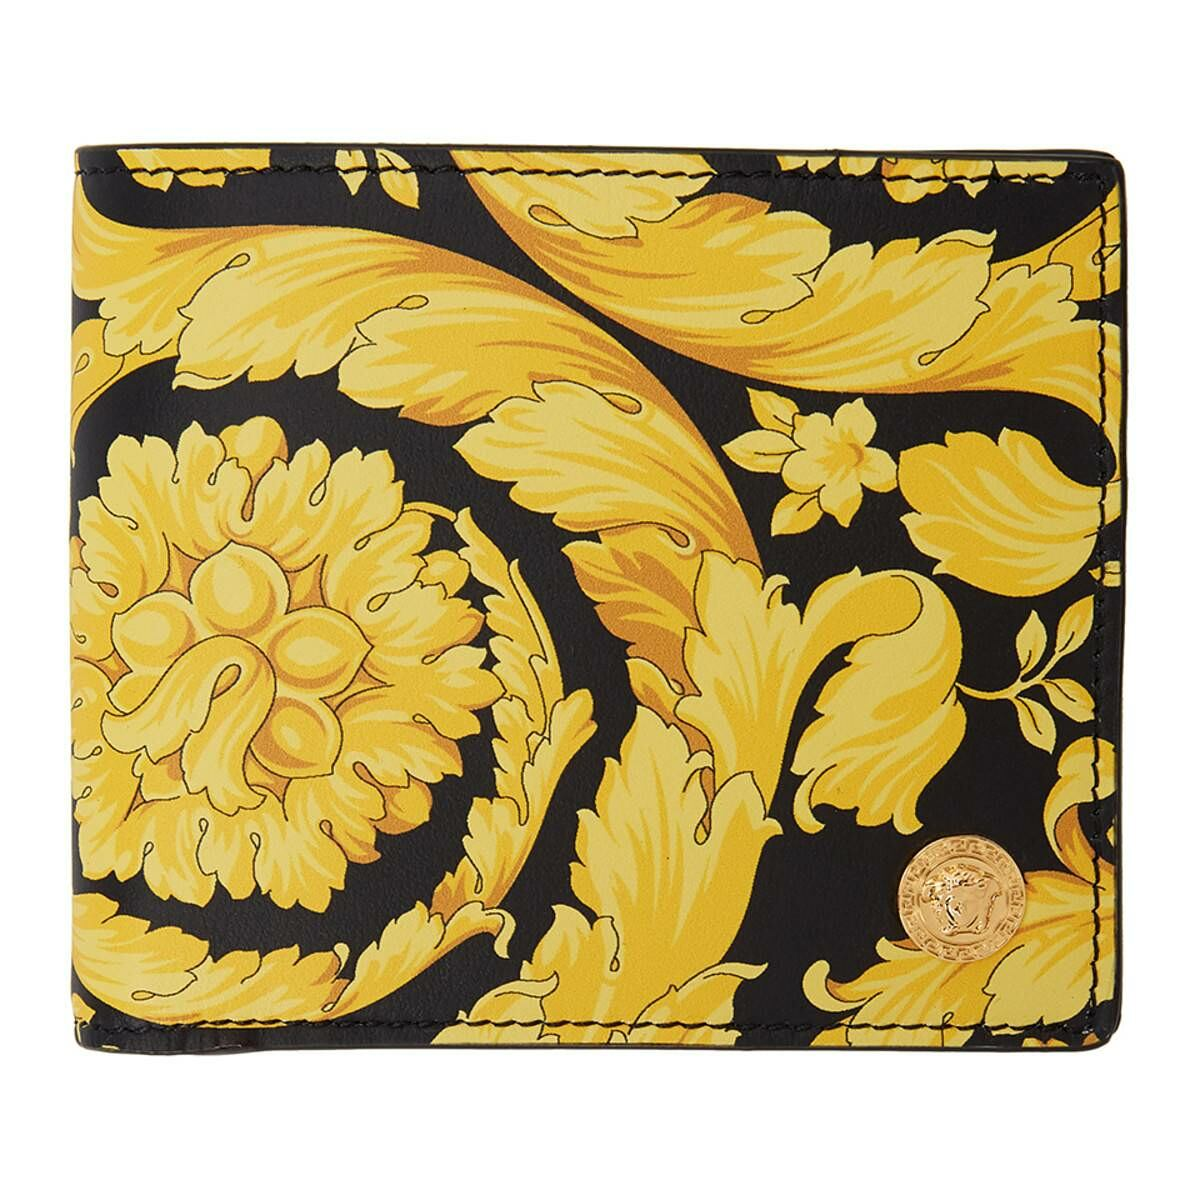 Versace Black and Yellow Barocco Medusa Bifold Wallet Ssense USA MEN Men ACCESSORIES Mens WALLETS